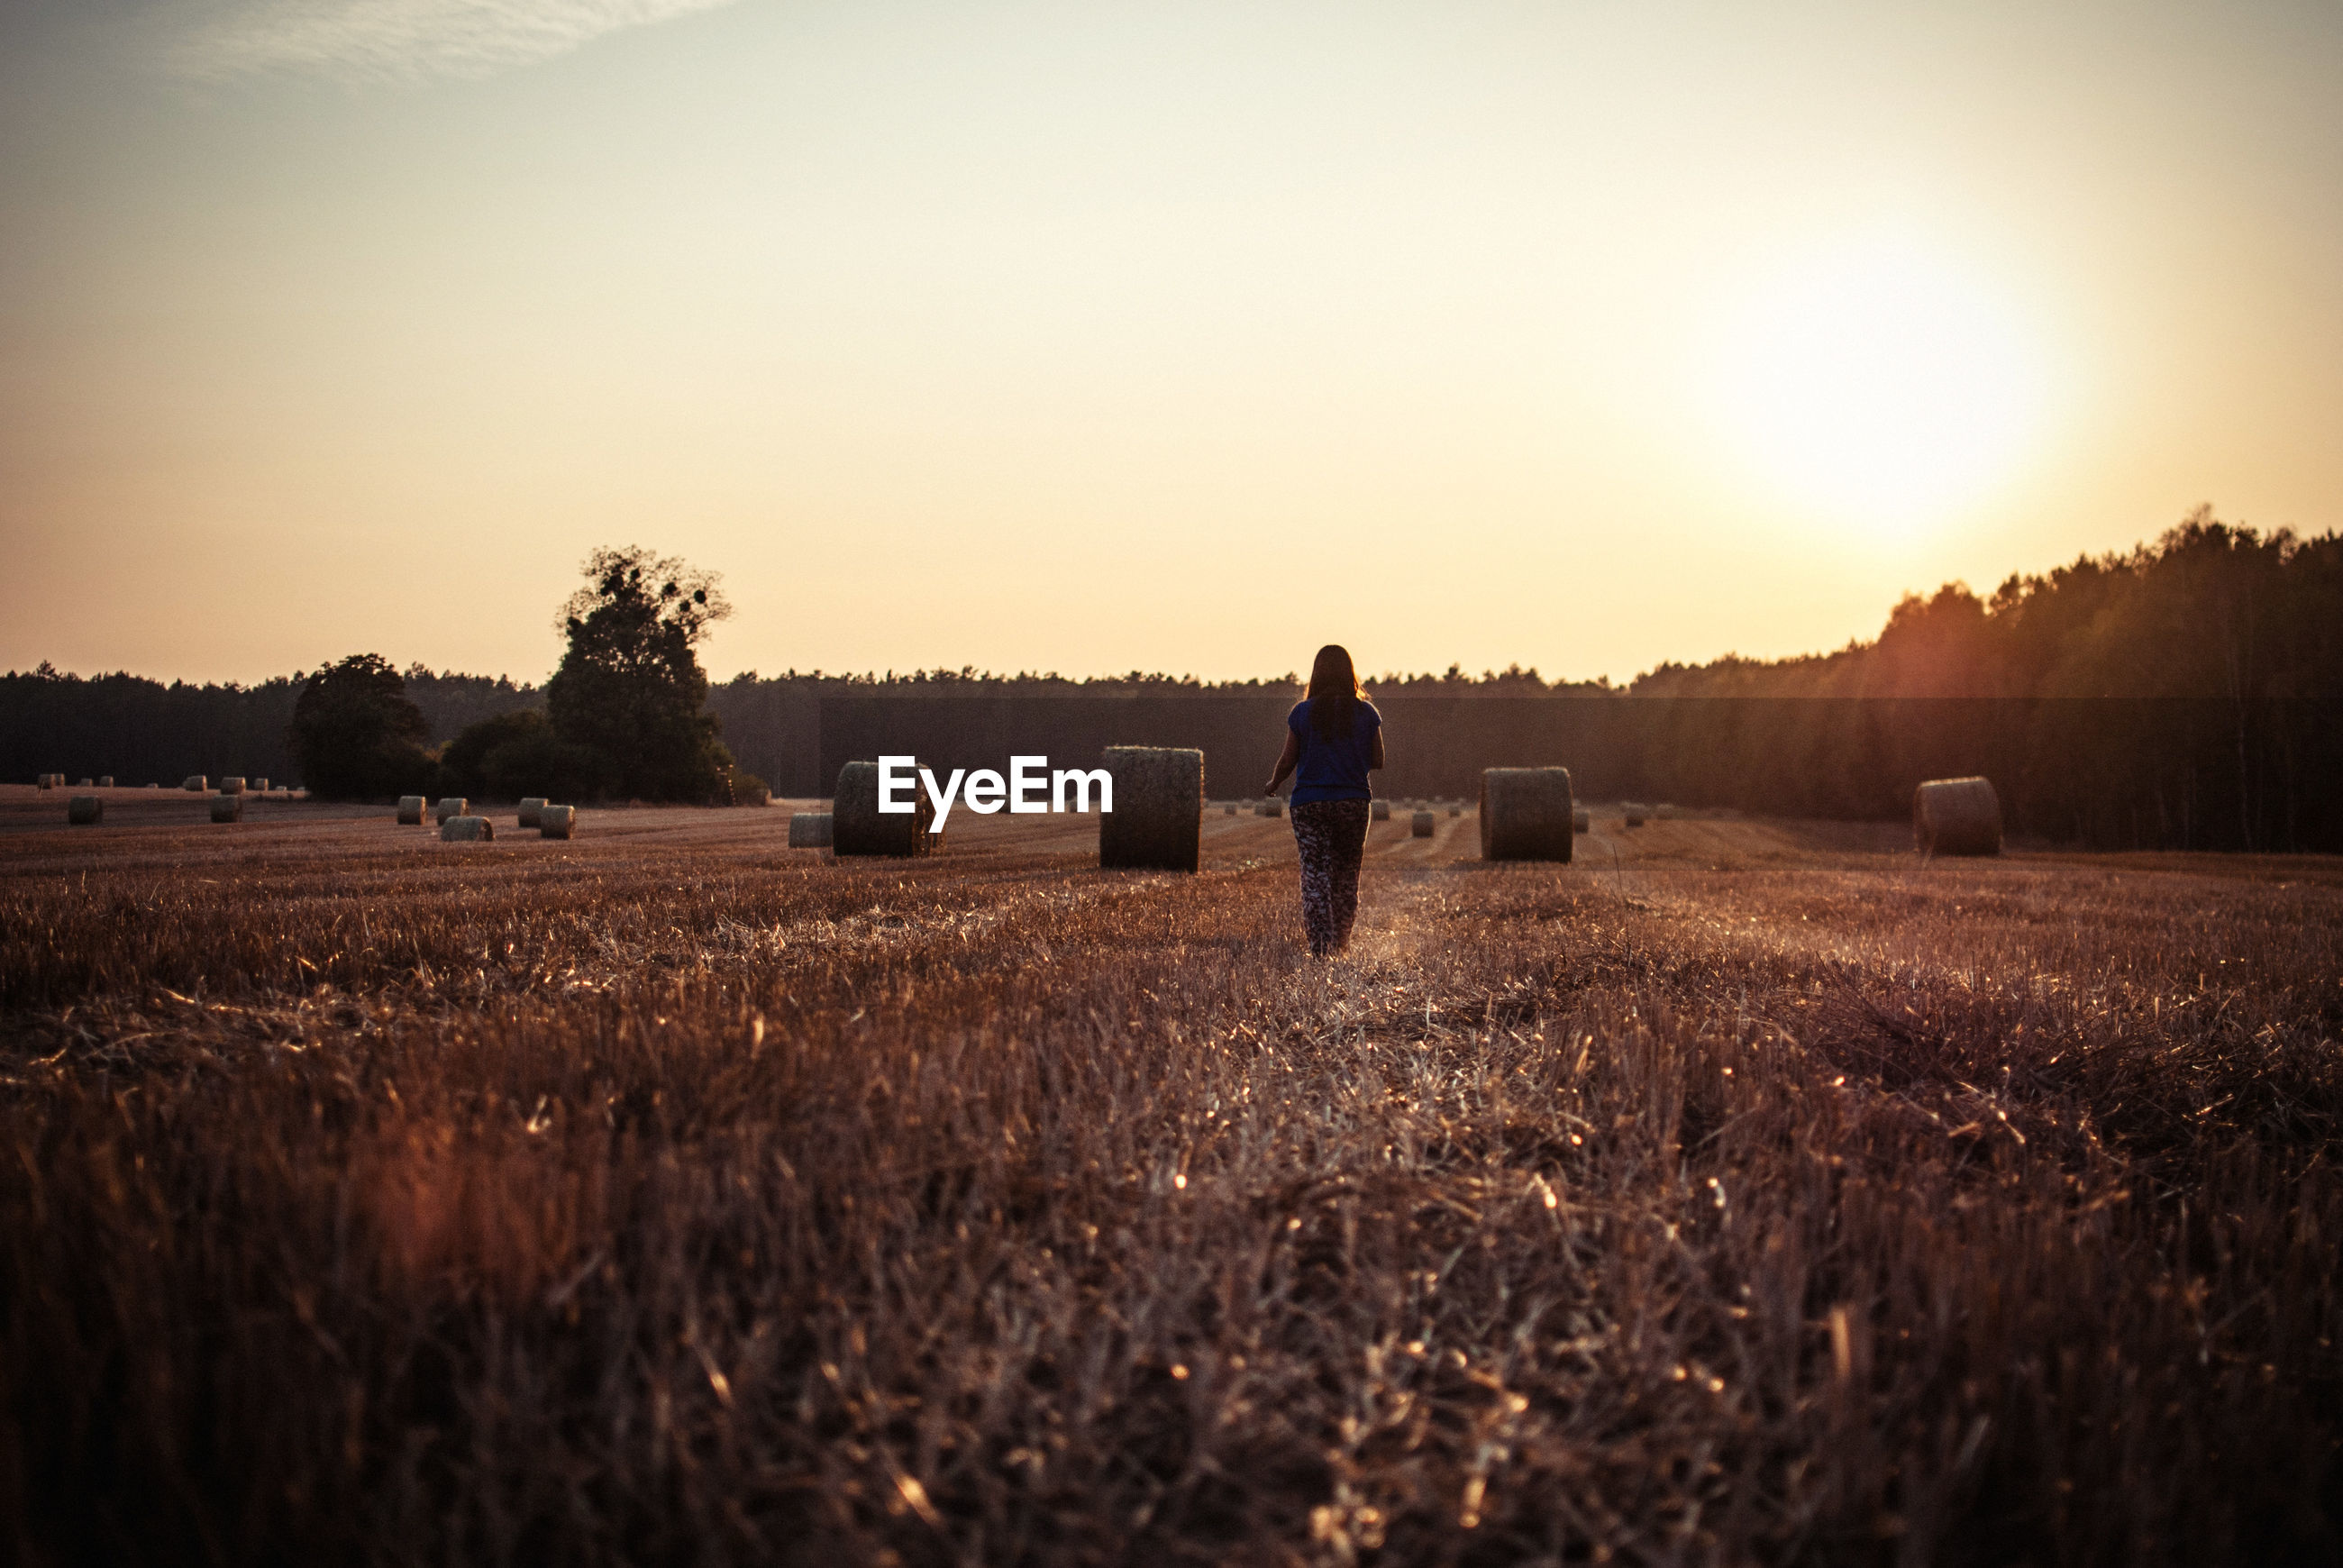 Rear view of woman walking by hay bales on field during sunset